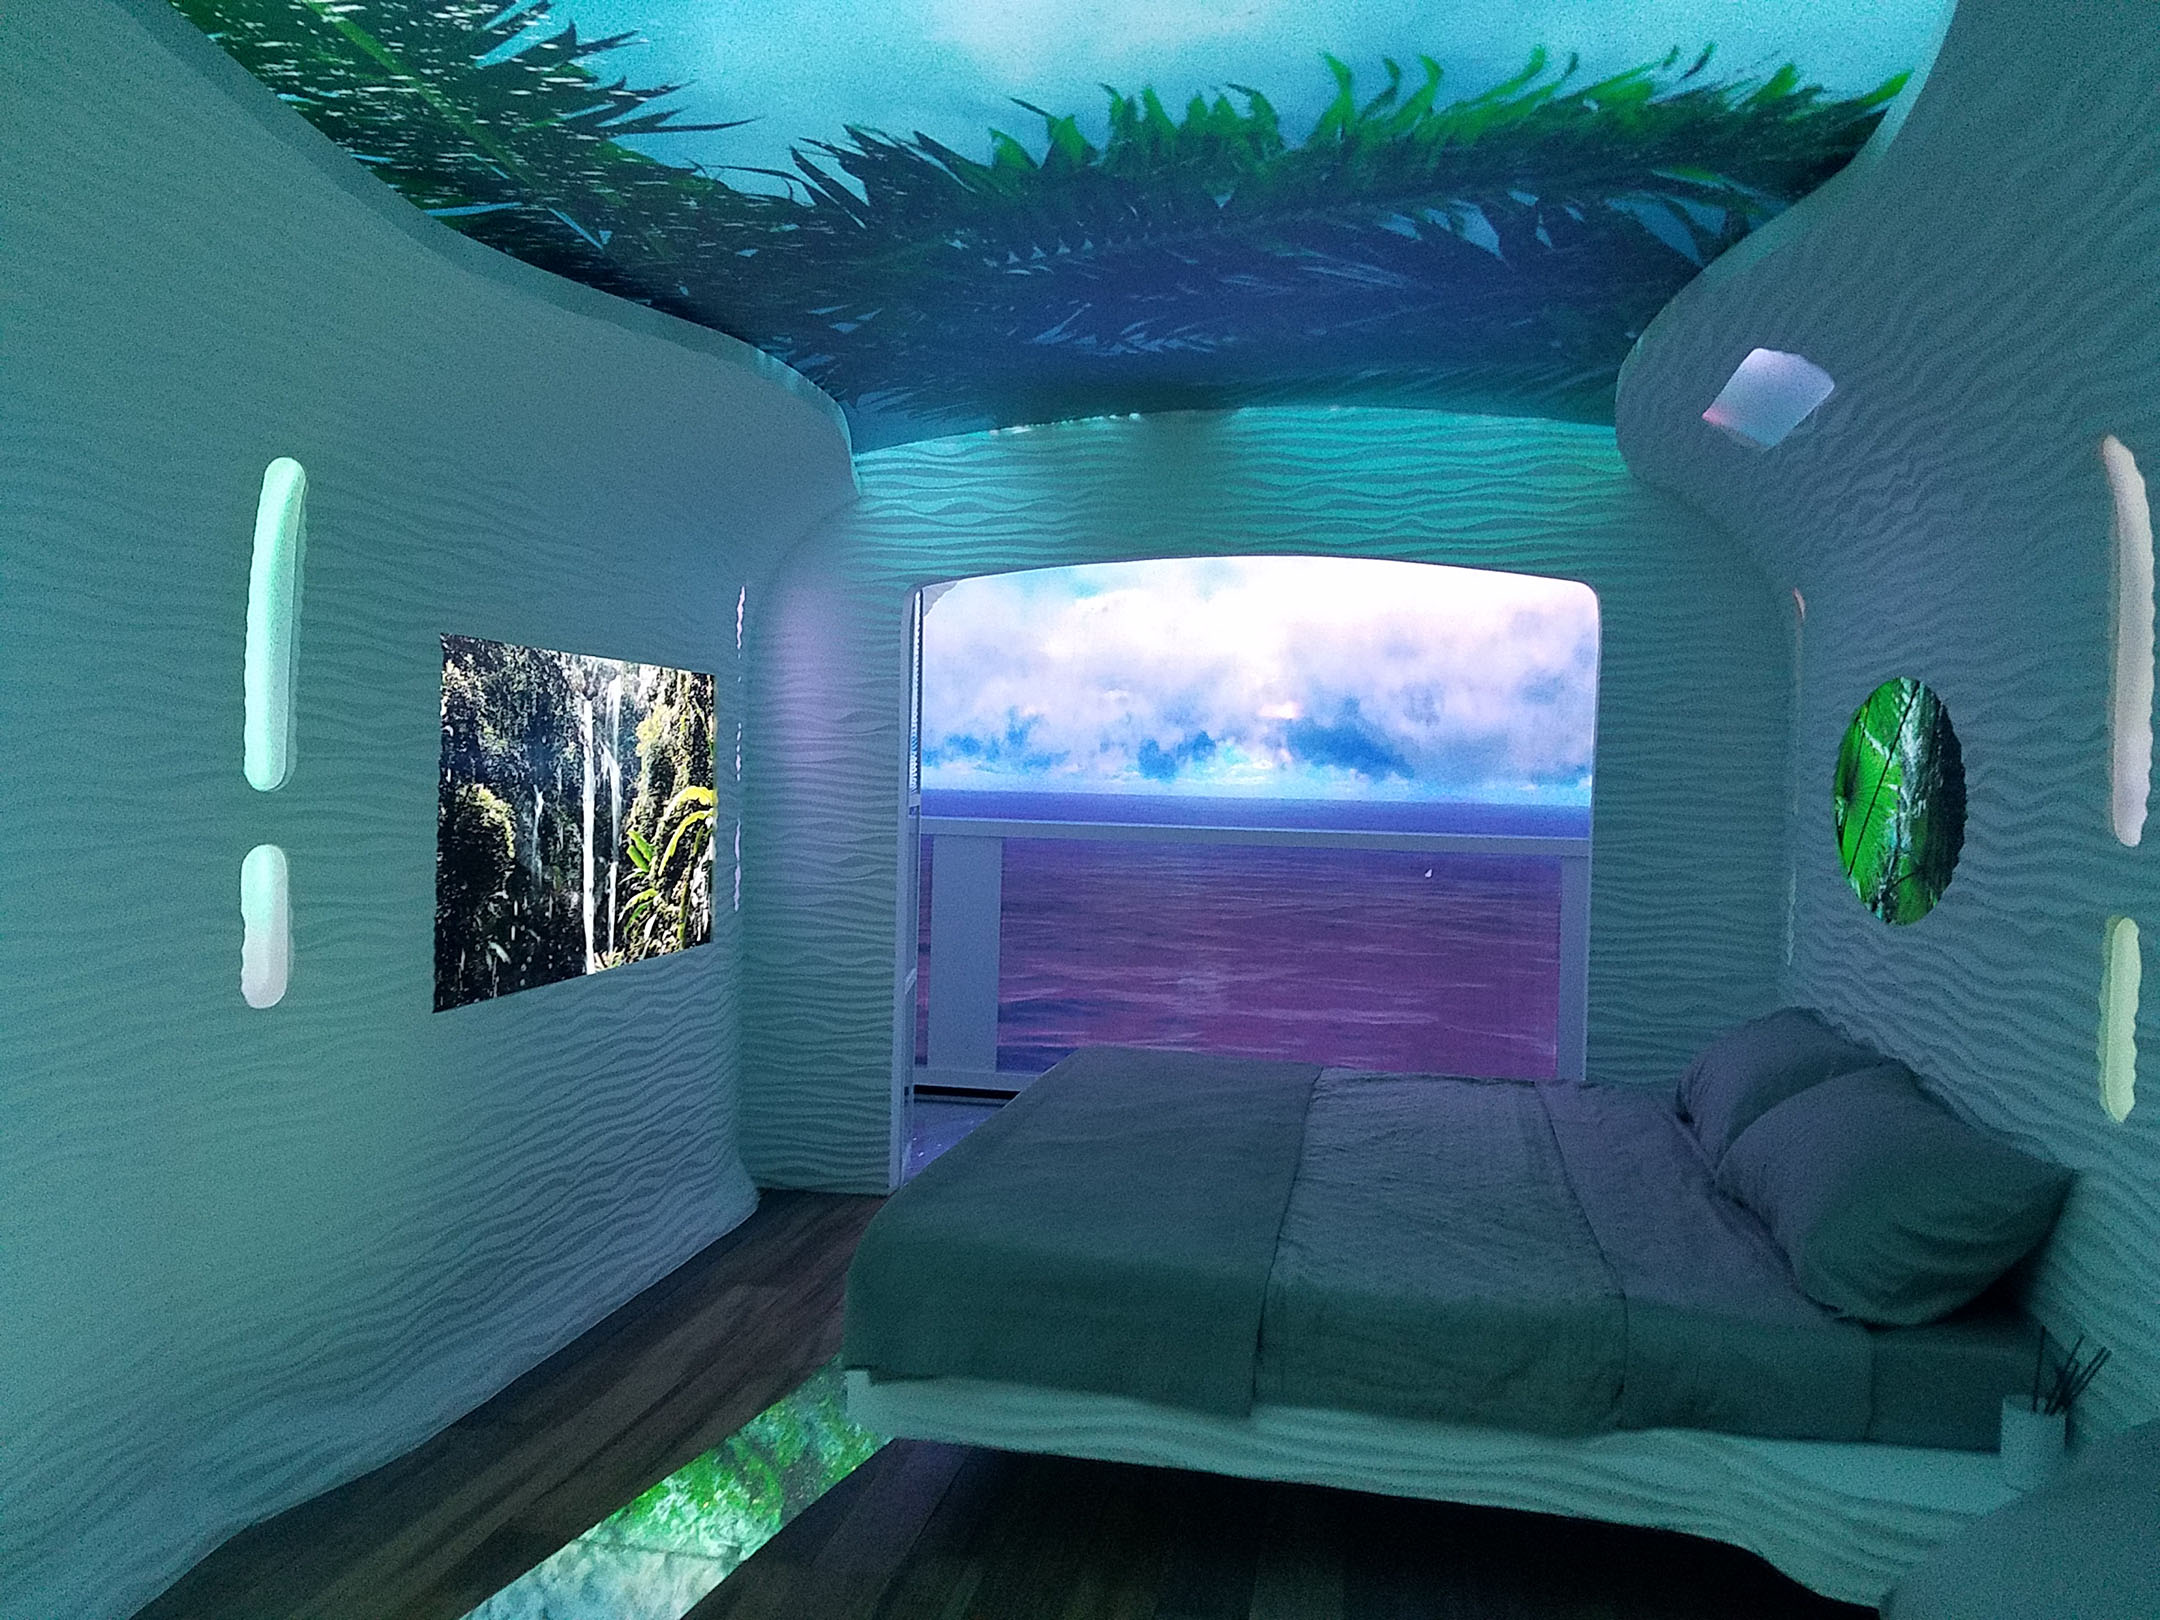 Immersive Tranquility with Digital Art on Digital Canvas